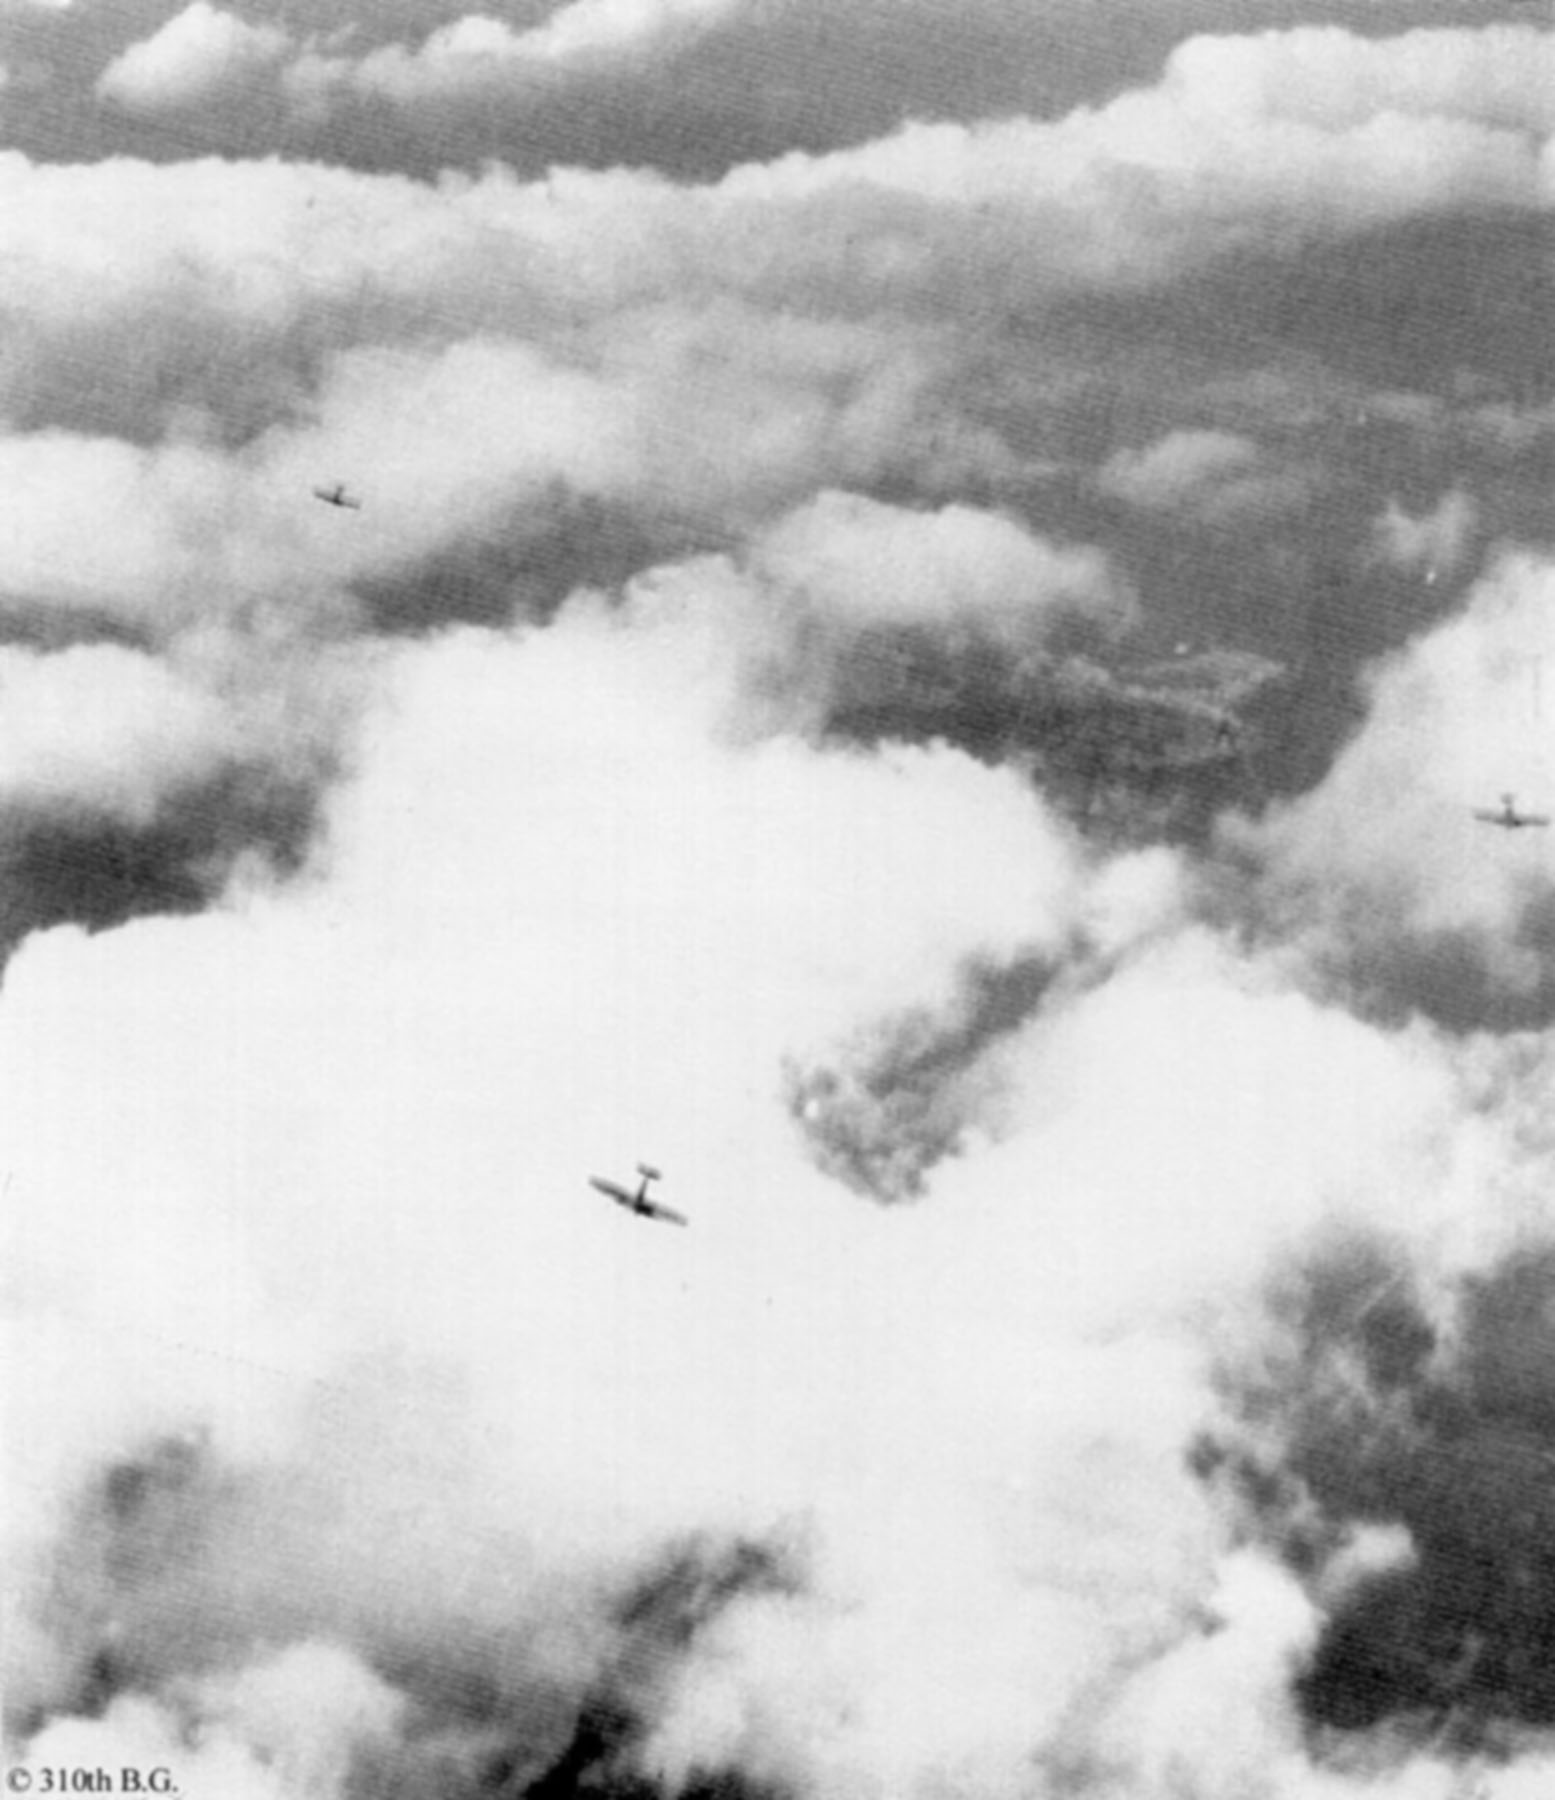 Spitfire Appennines in Italy Wartime BW RAF 01